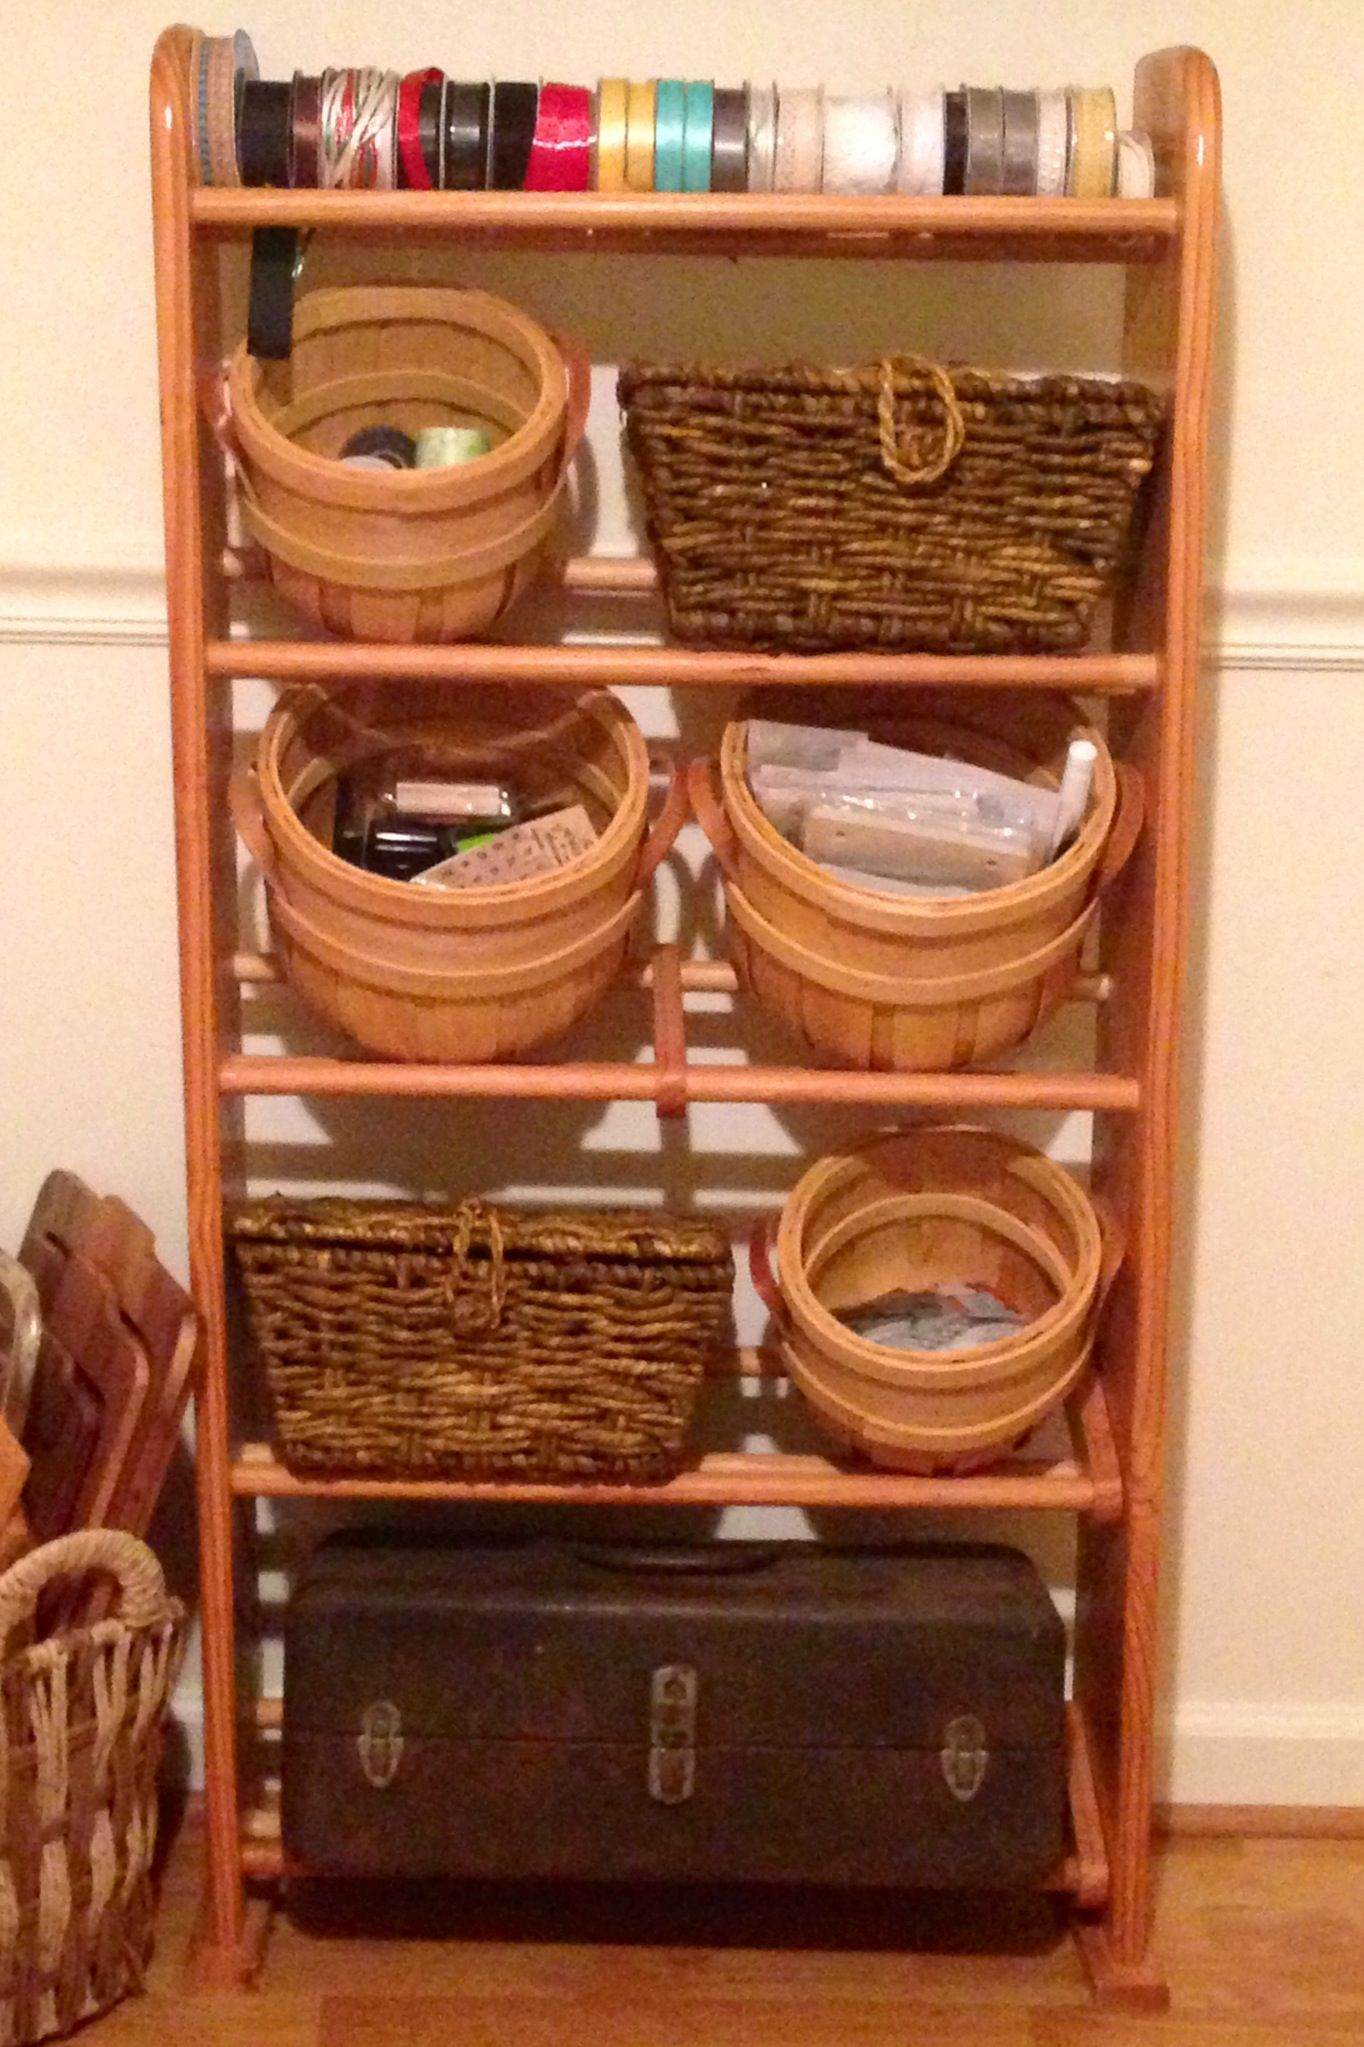 Lovely New Use For The Old VHS Tape Storage Rack! Craft Organizer!